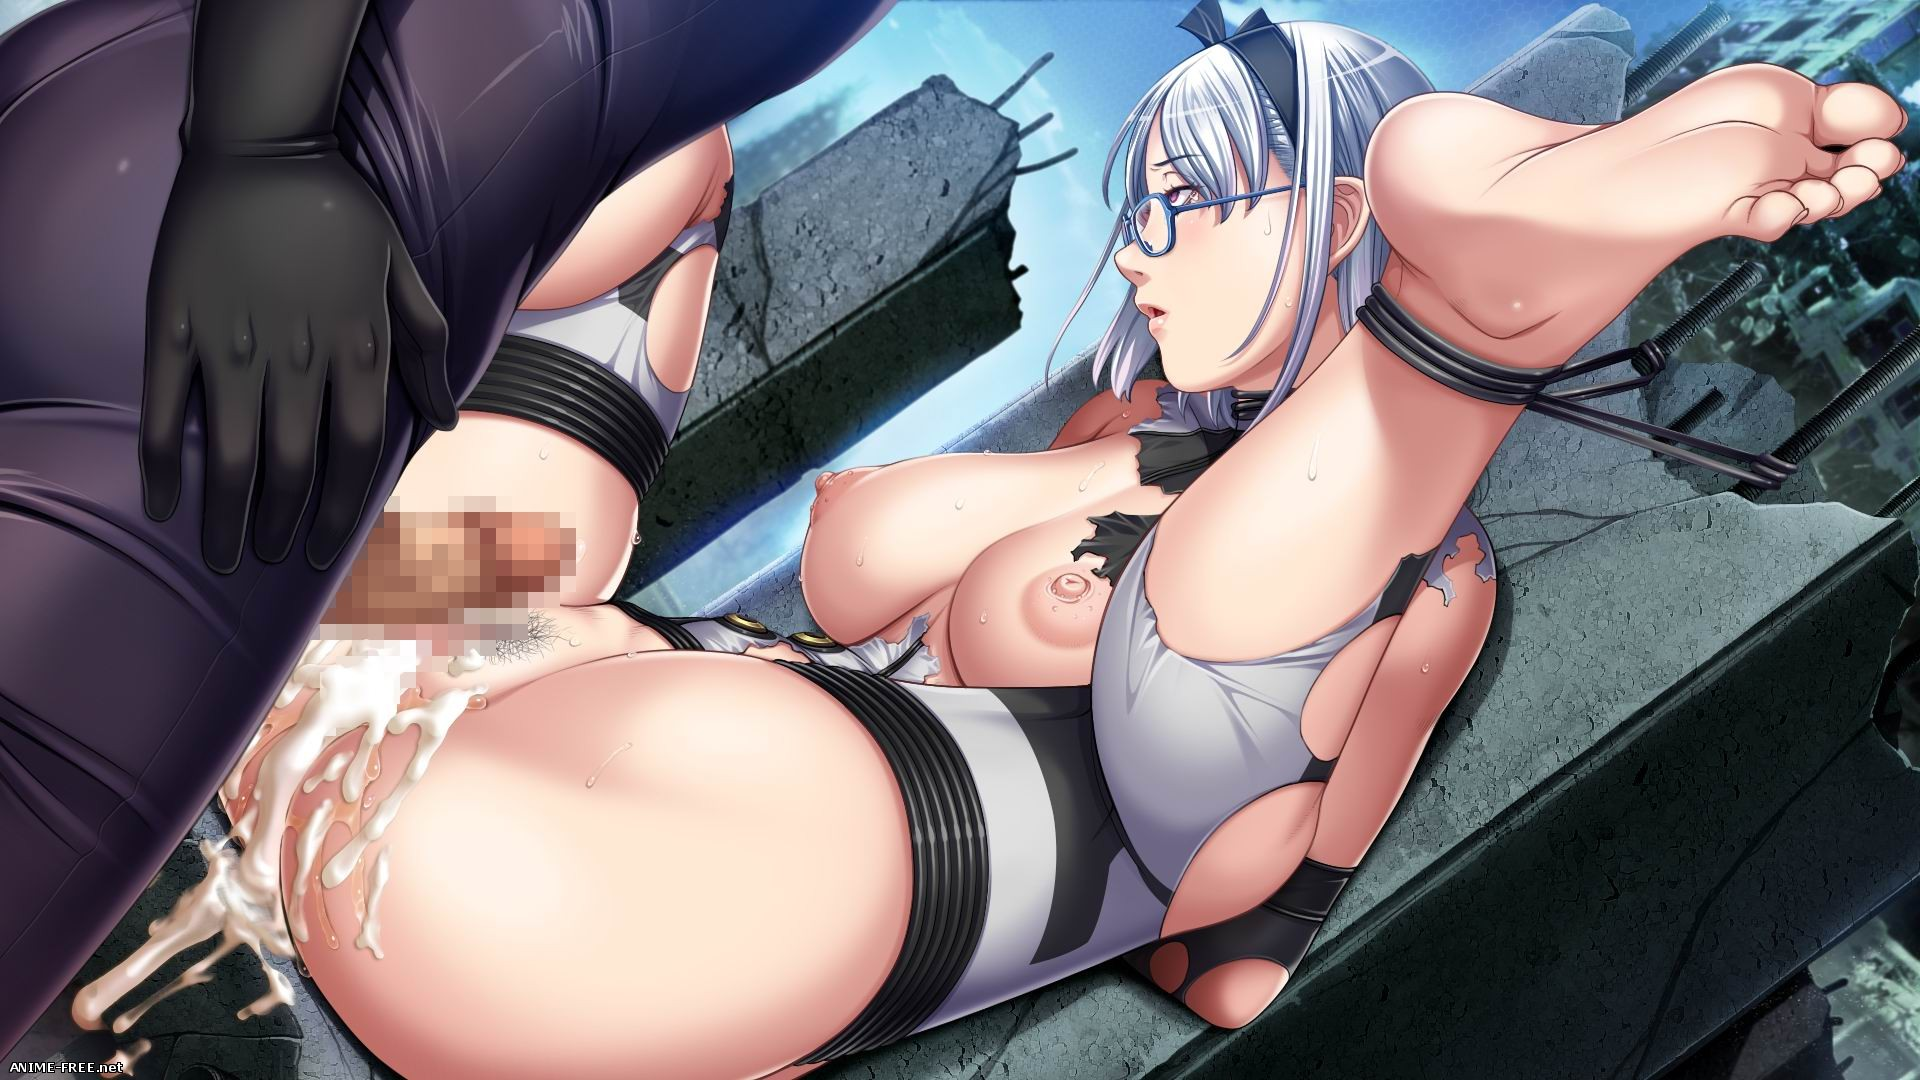 Closed Game [HCG] [Cen] [JPG] Hentai ART